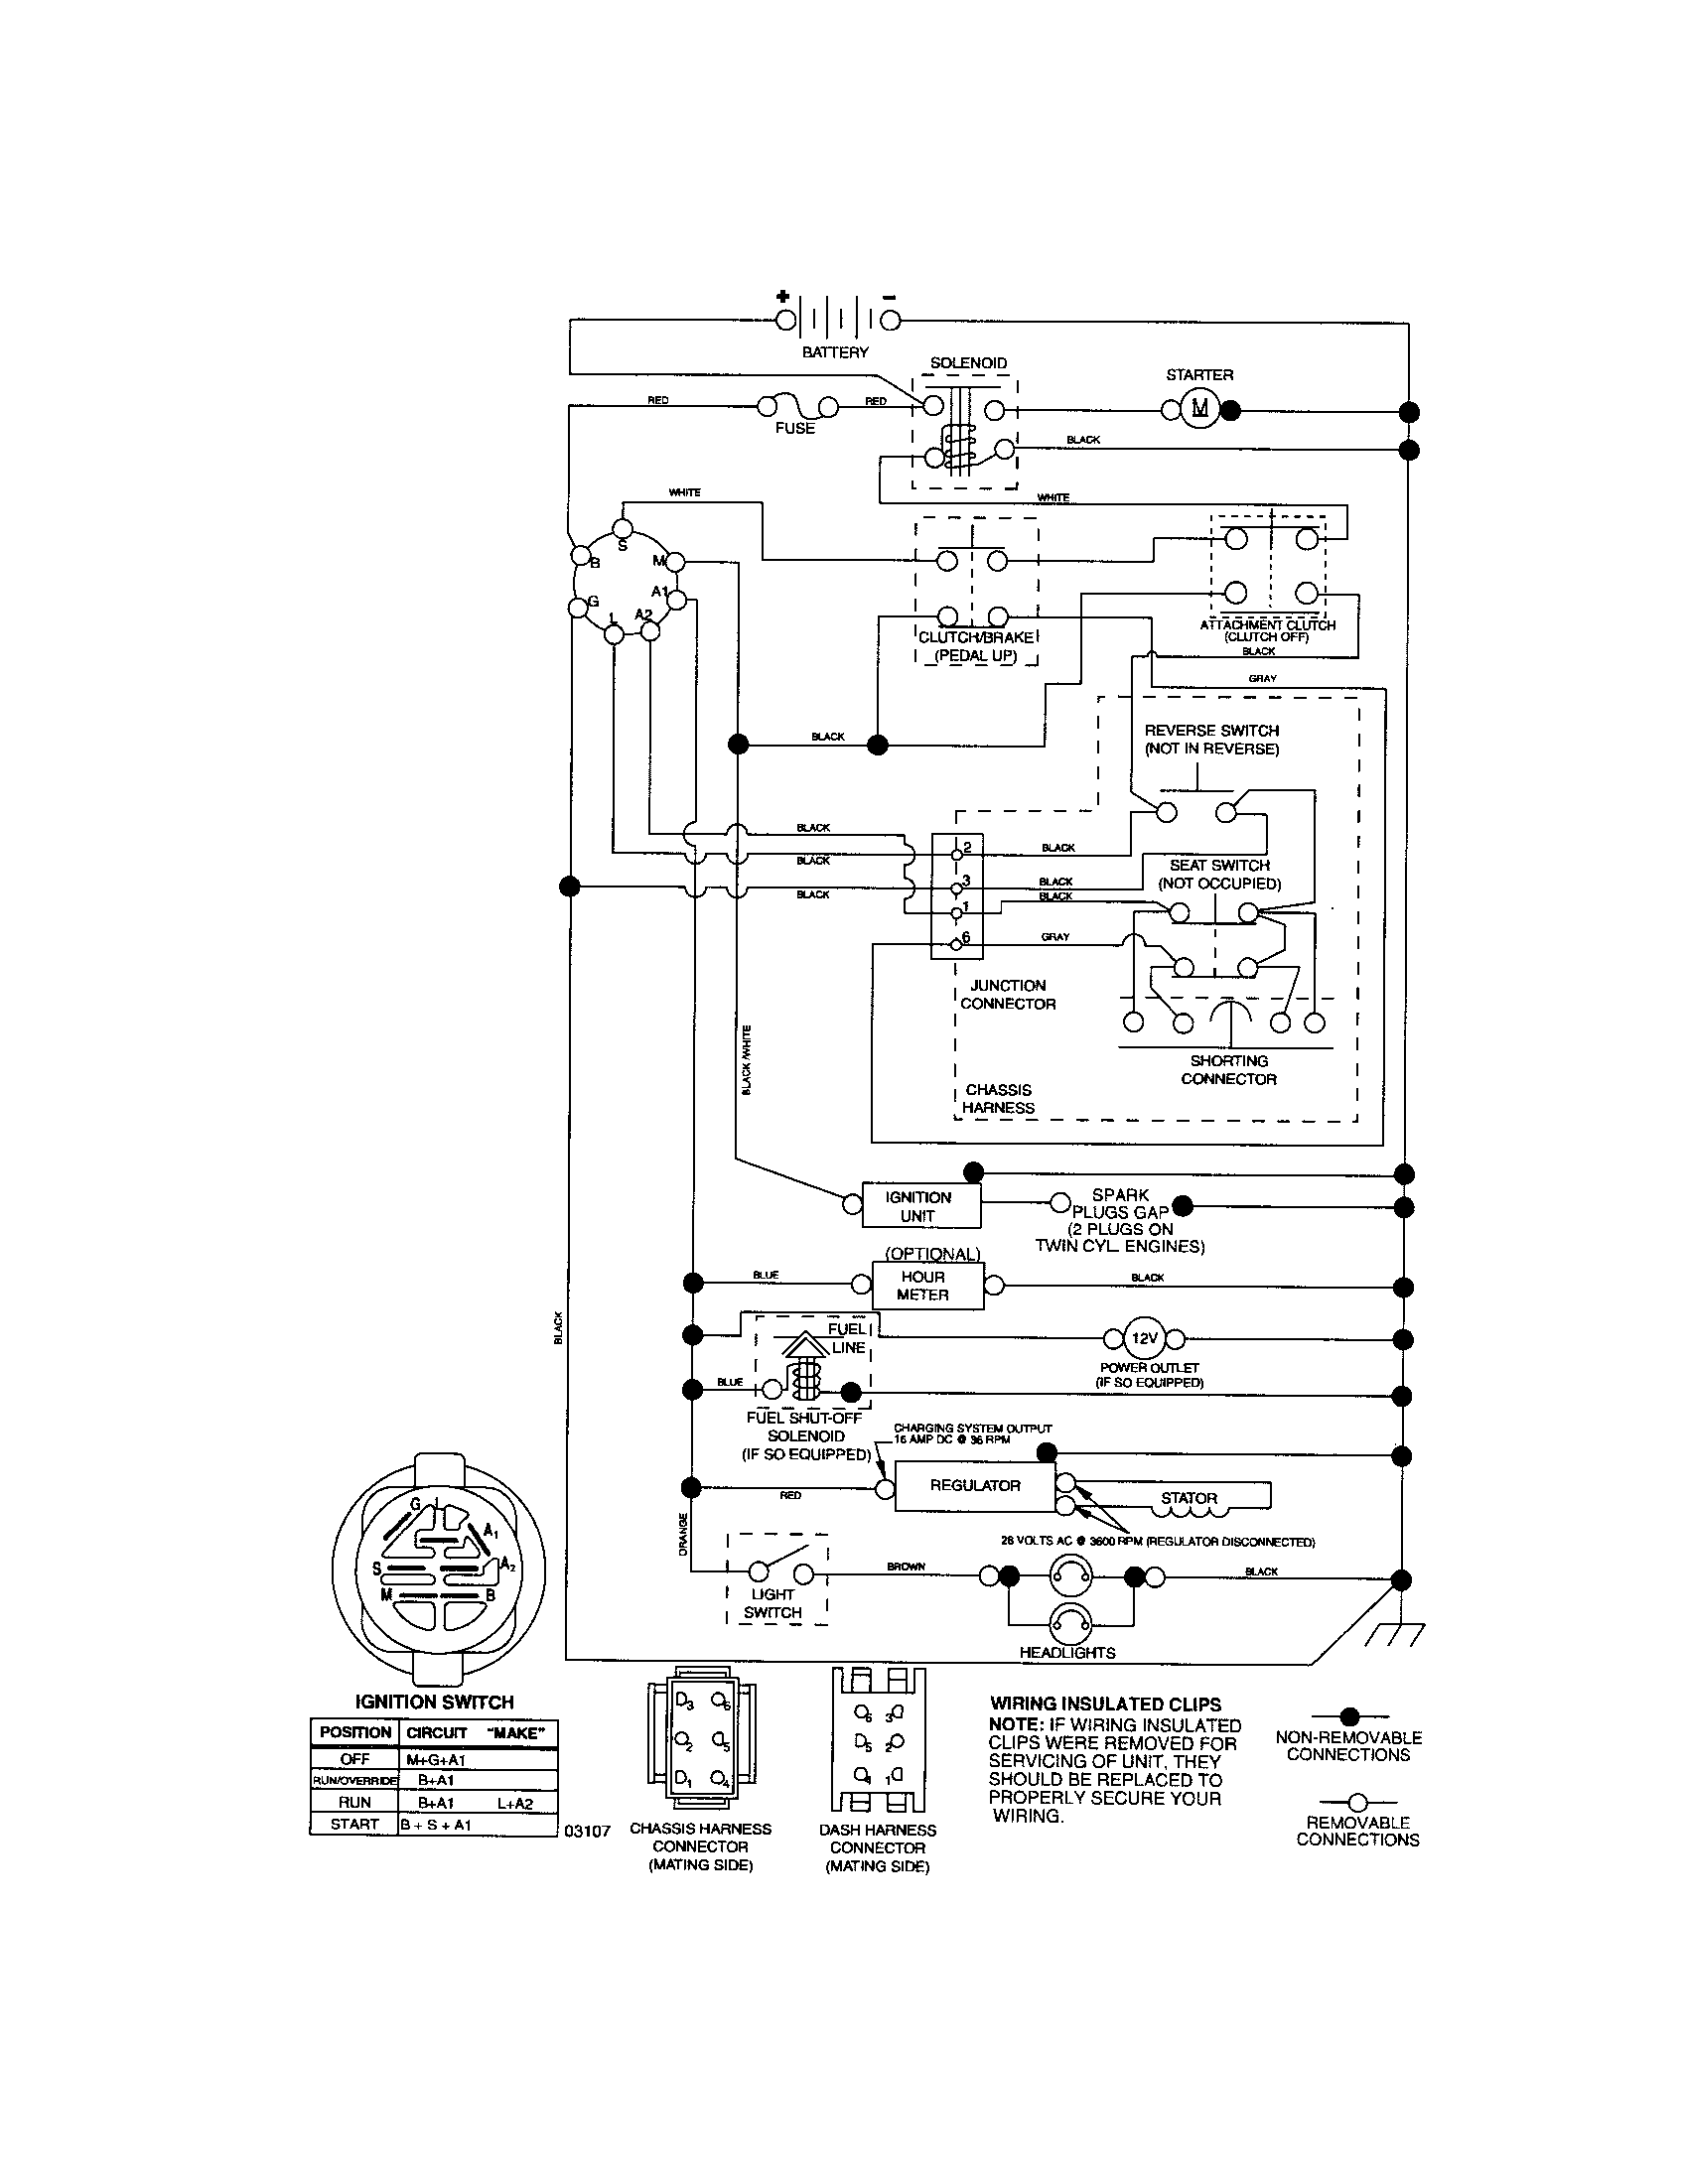 small resolution of power king 1614 tractor wiring diagram wiring librarycraftsman riding mower electrical diagram wiring diagram craftsman marshall